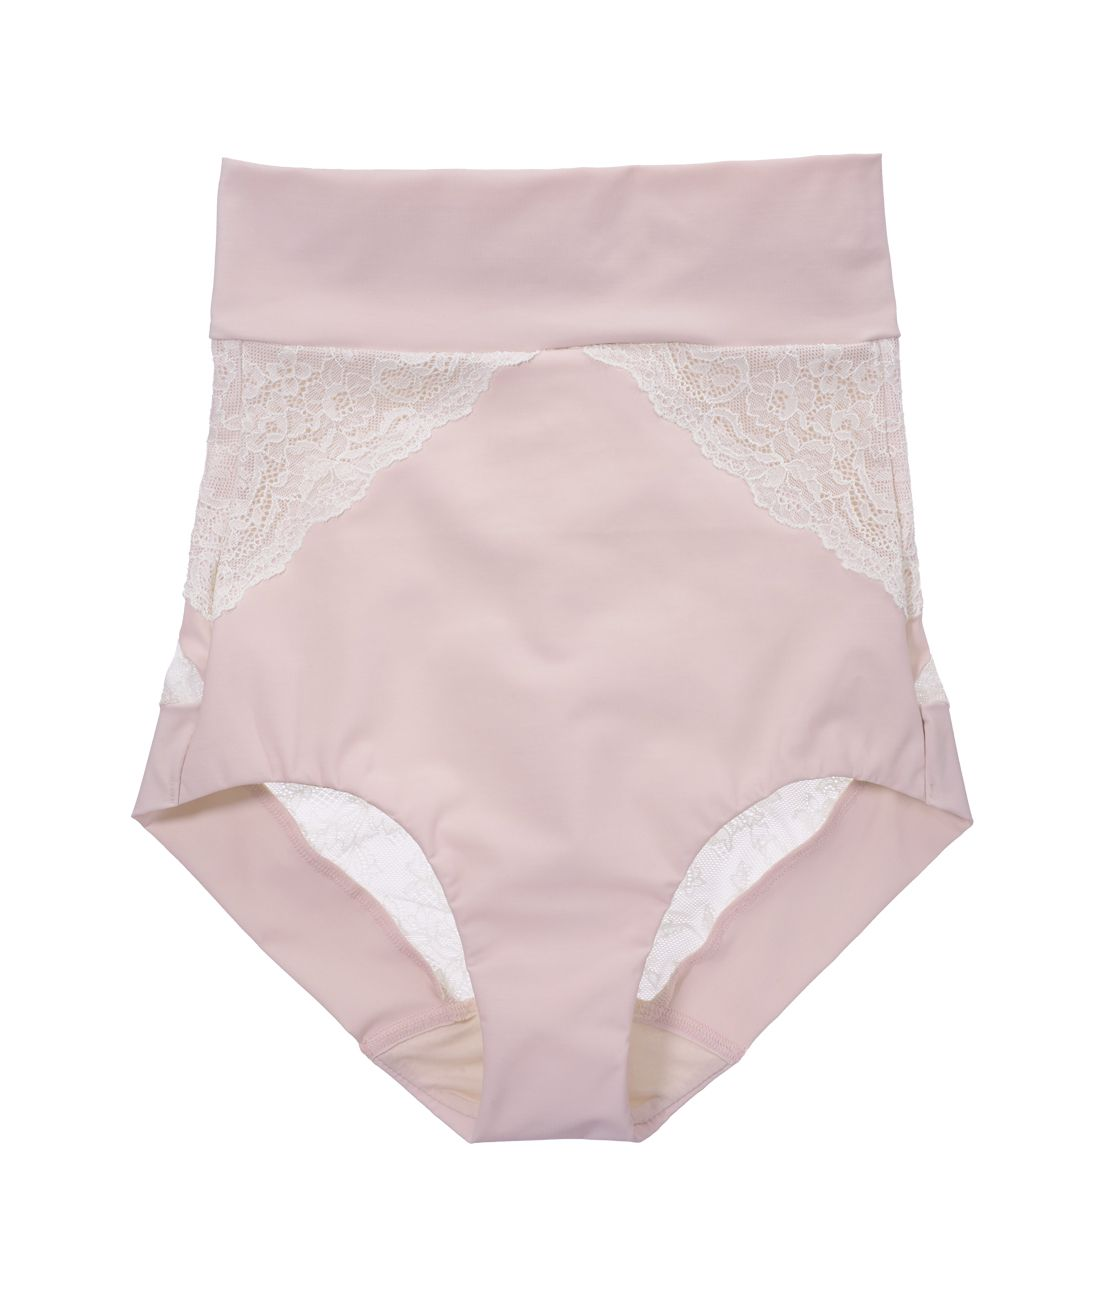 Hami meat light shape high waist panty